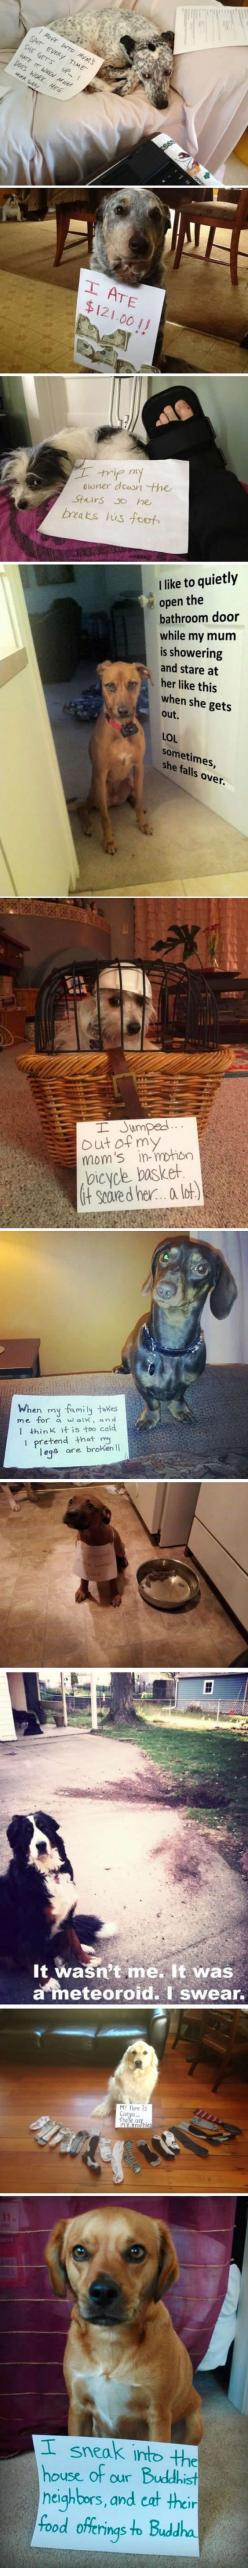 Funny Dog Shaming - notice how you never see any cat shaming... This is clearly bc they're not as dumb as dogs.: Dog Shame, Dog Shaming, Bad Dog, Dog Confessions, Animal Shaming, Pet Shaming